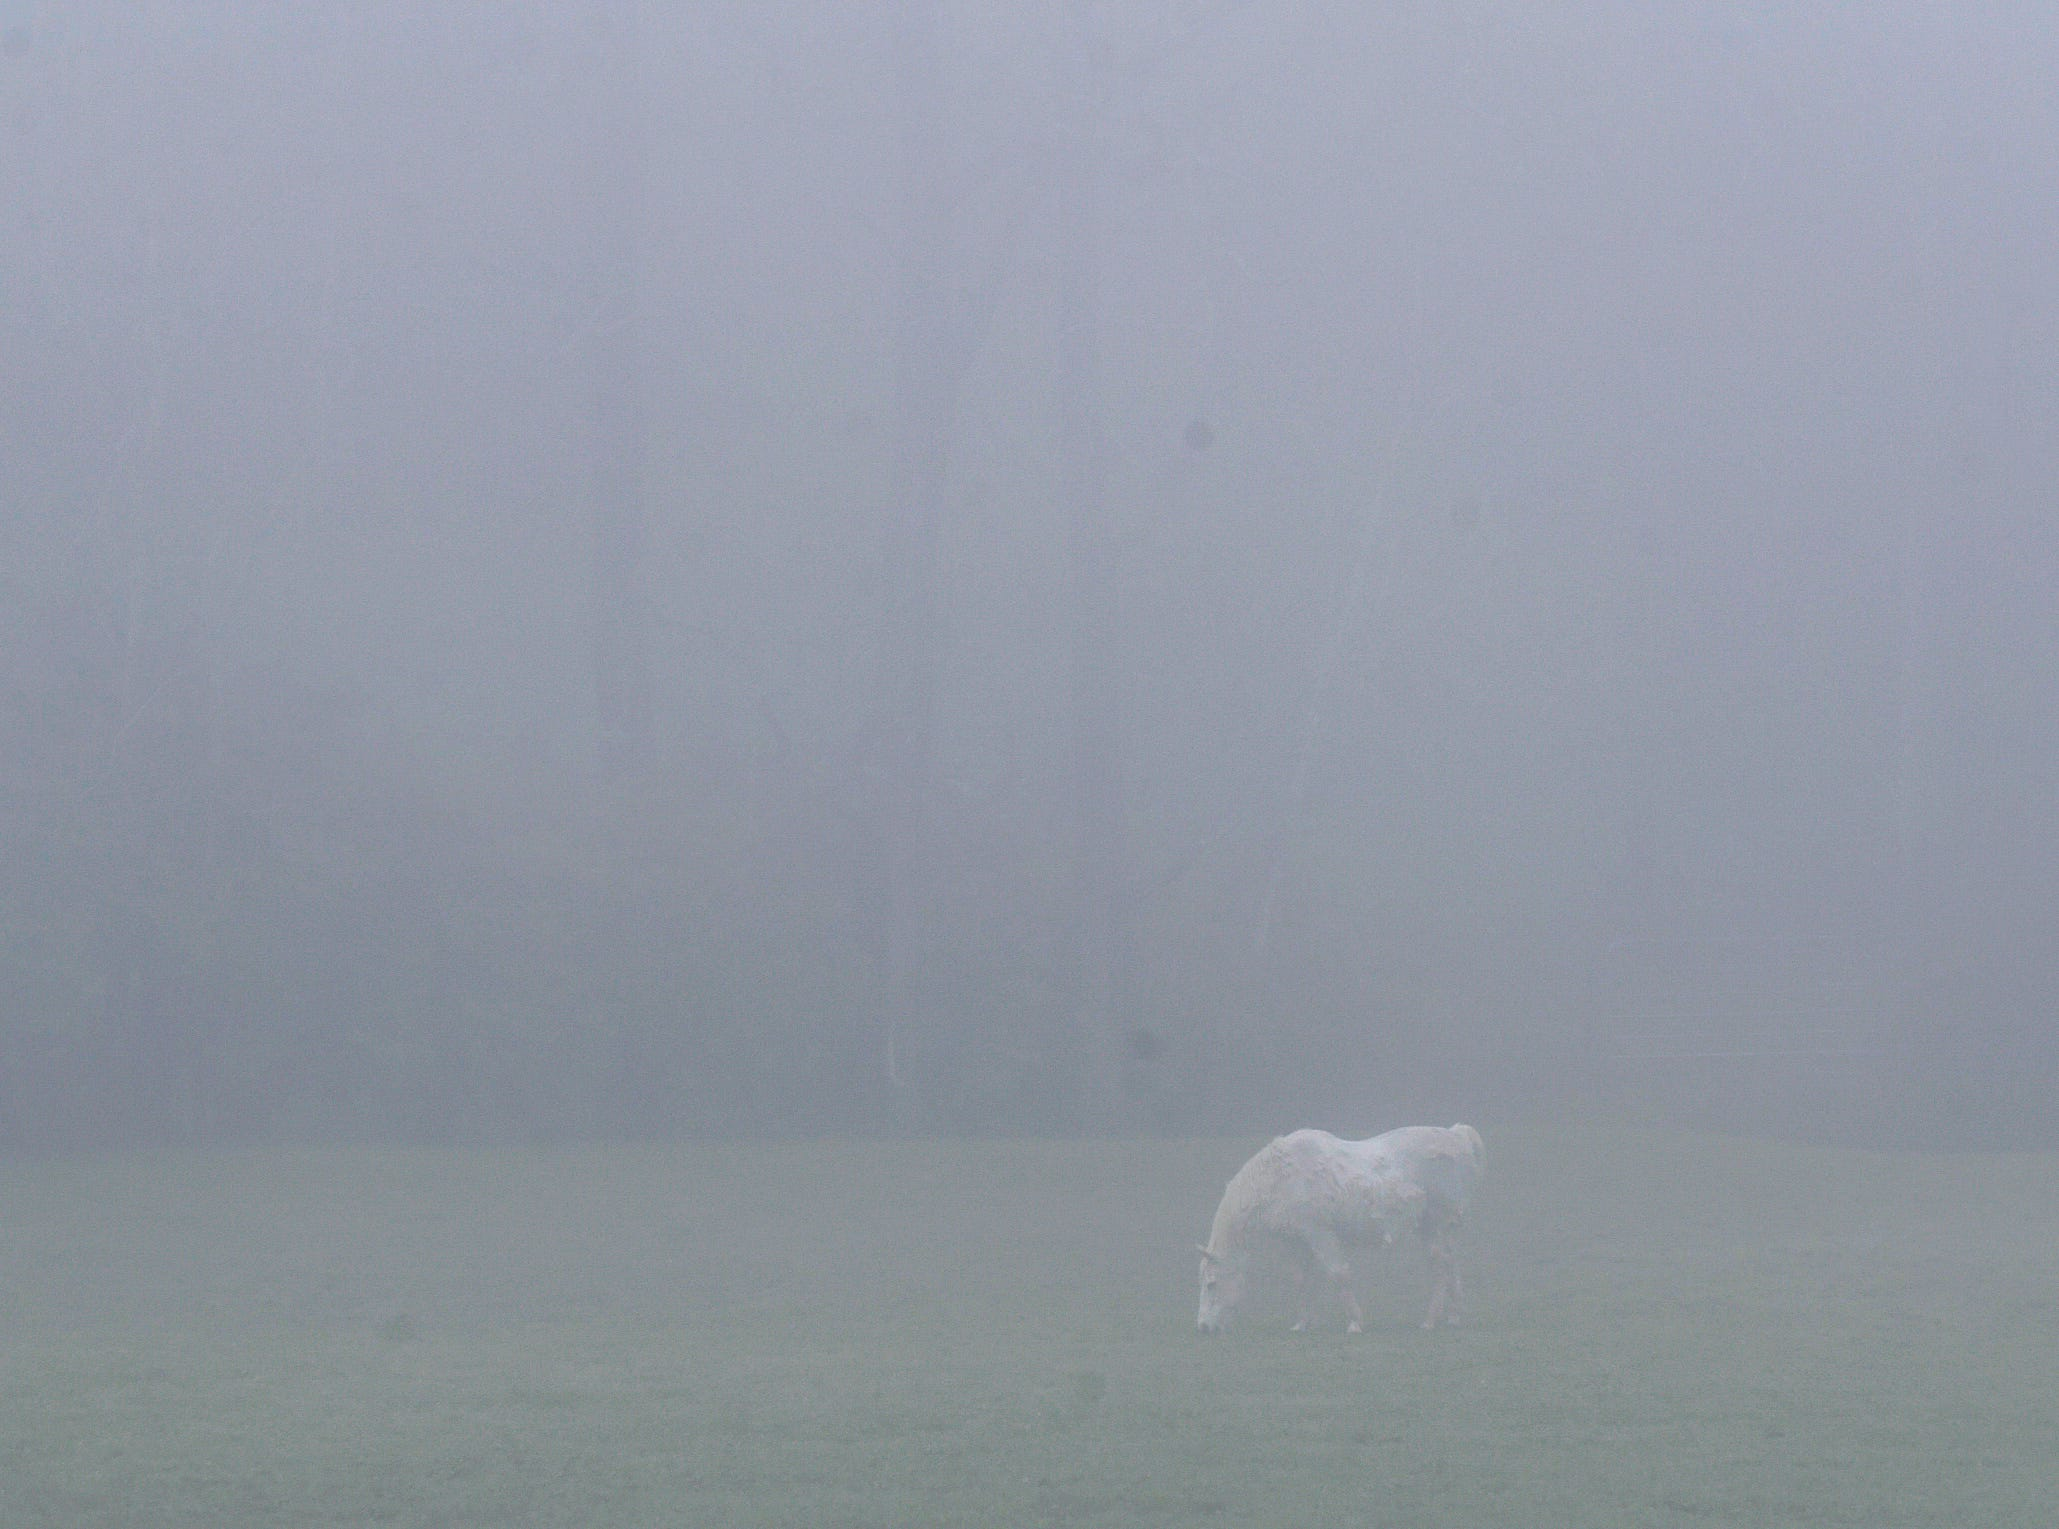 A horse gazes in a field on Murray Lane in Brentwood on Tuesday morning,  April 8, 2019. A dense fog advisory was issued for Middle Tennessee.